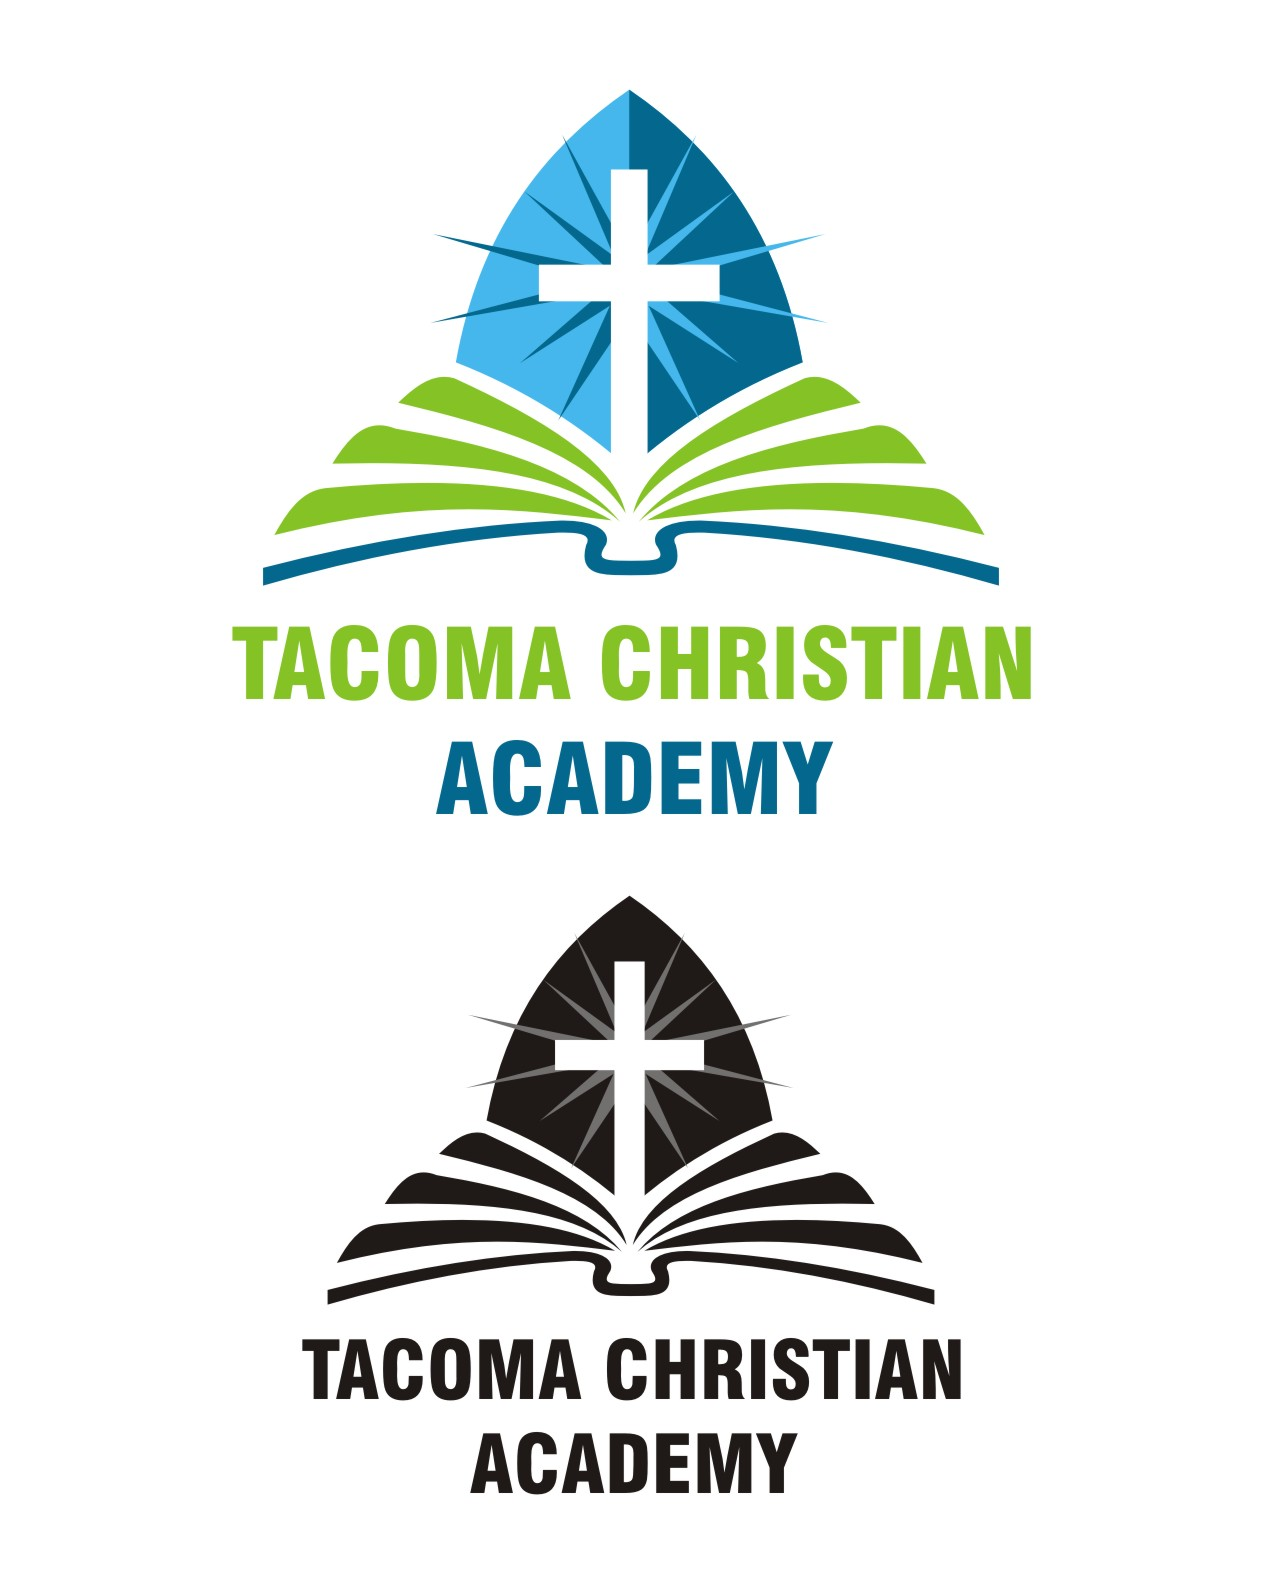 Logo Design by Spider Graphics - Entry No. 28 in the Logo Design Contest Imaginative Logo Design for Tacoma Christian Academy.